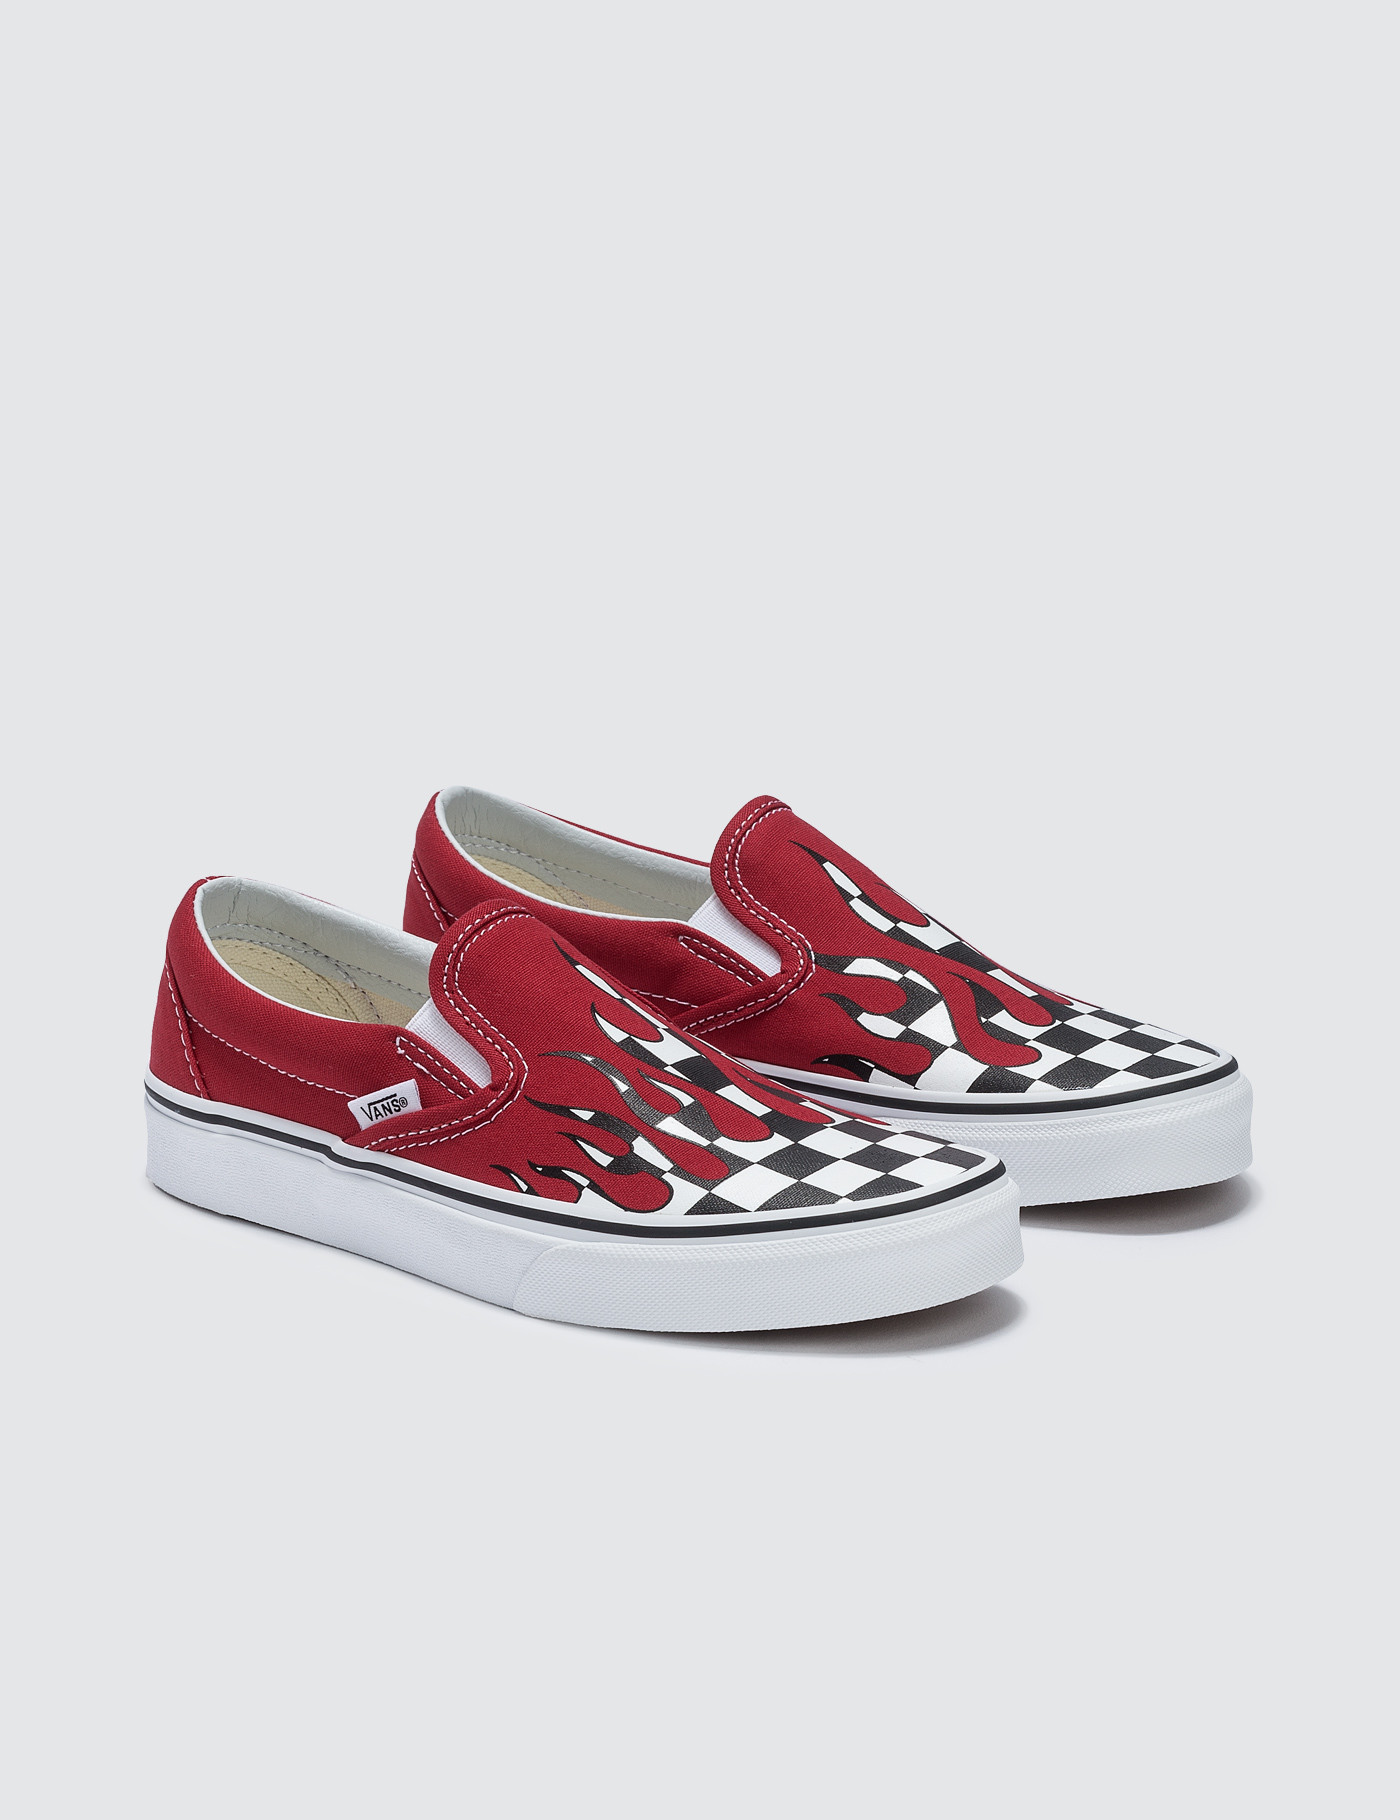 cd236f9f6d Buy Original Vans Checker Flame Classic Slip-on at Indonesia